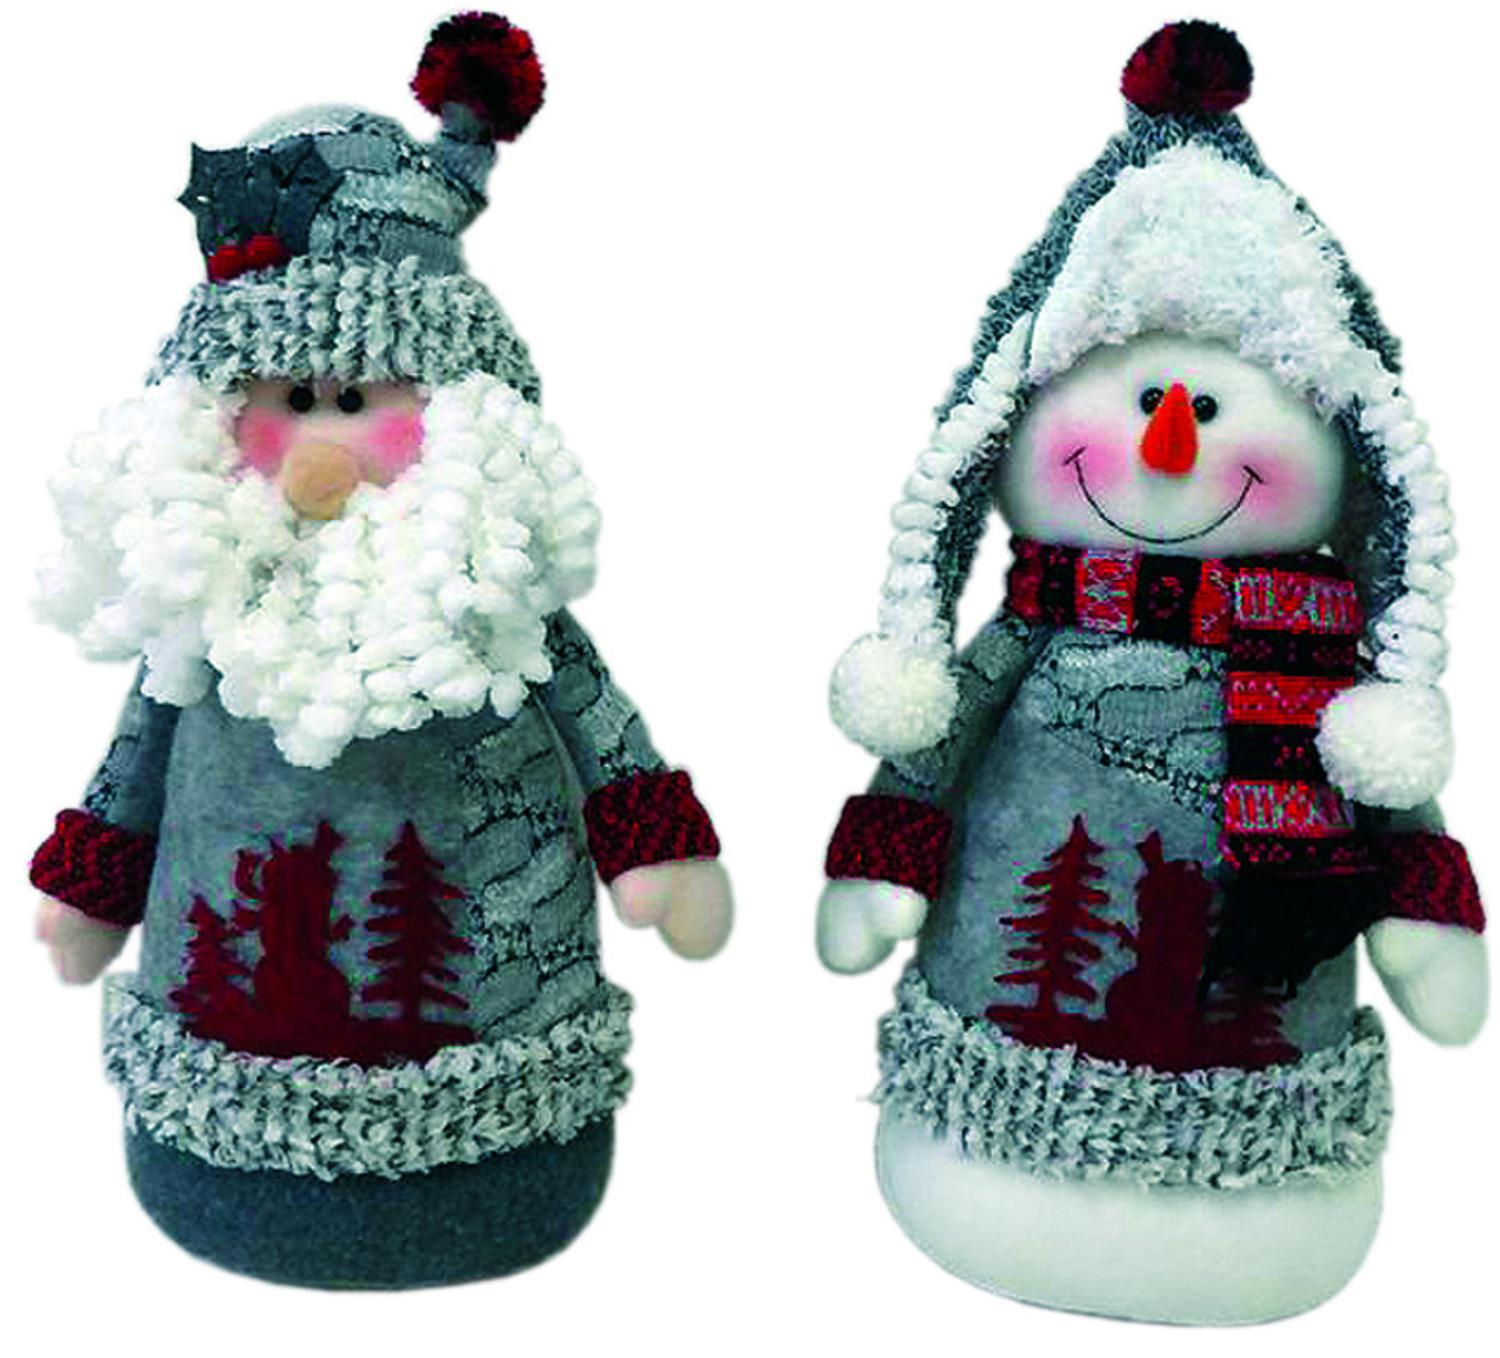 Set of 2 Artic Santa Claus and Snowman Plush Christmas Sitting Figures 13""